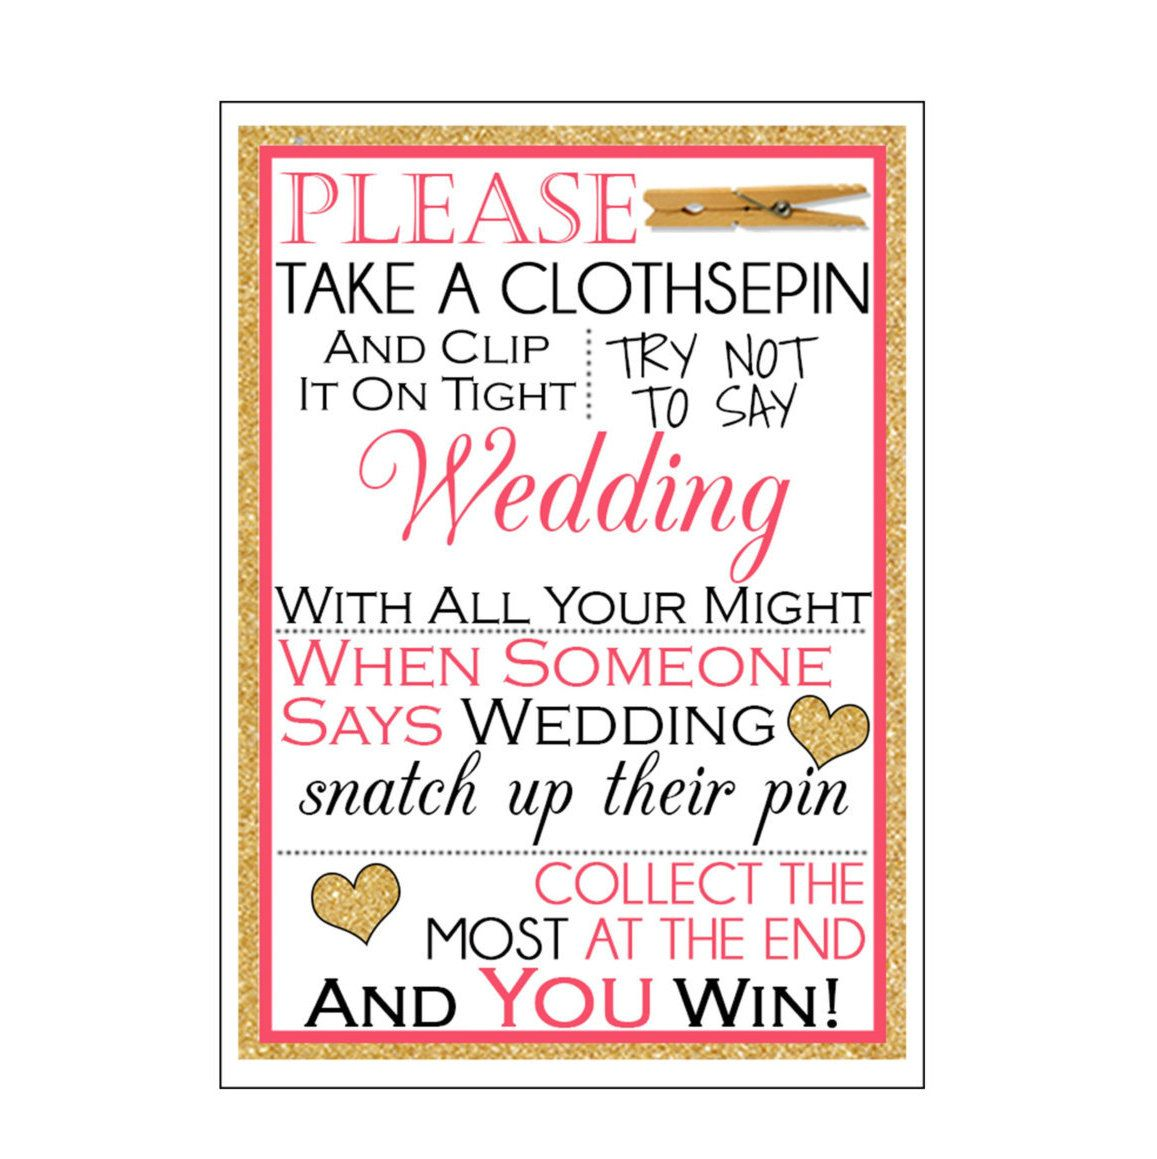 kate spade inspired bridal shower clothespin game sign by classicdesignsbyklm on etsy